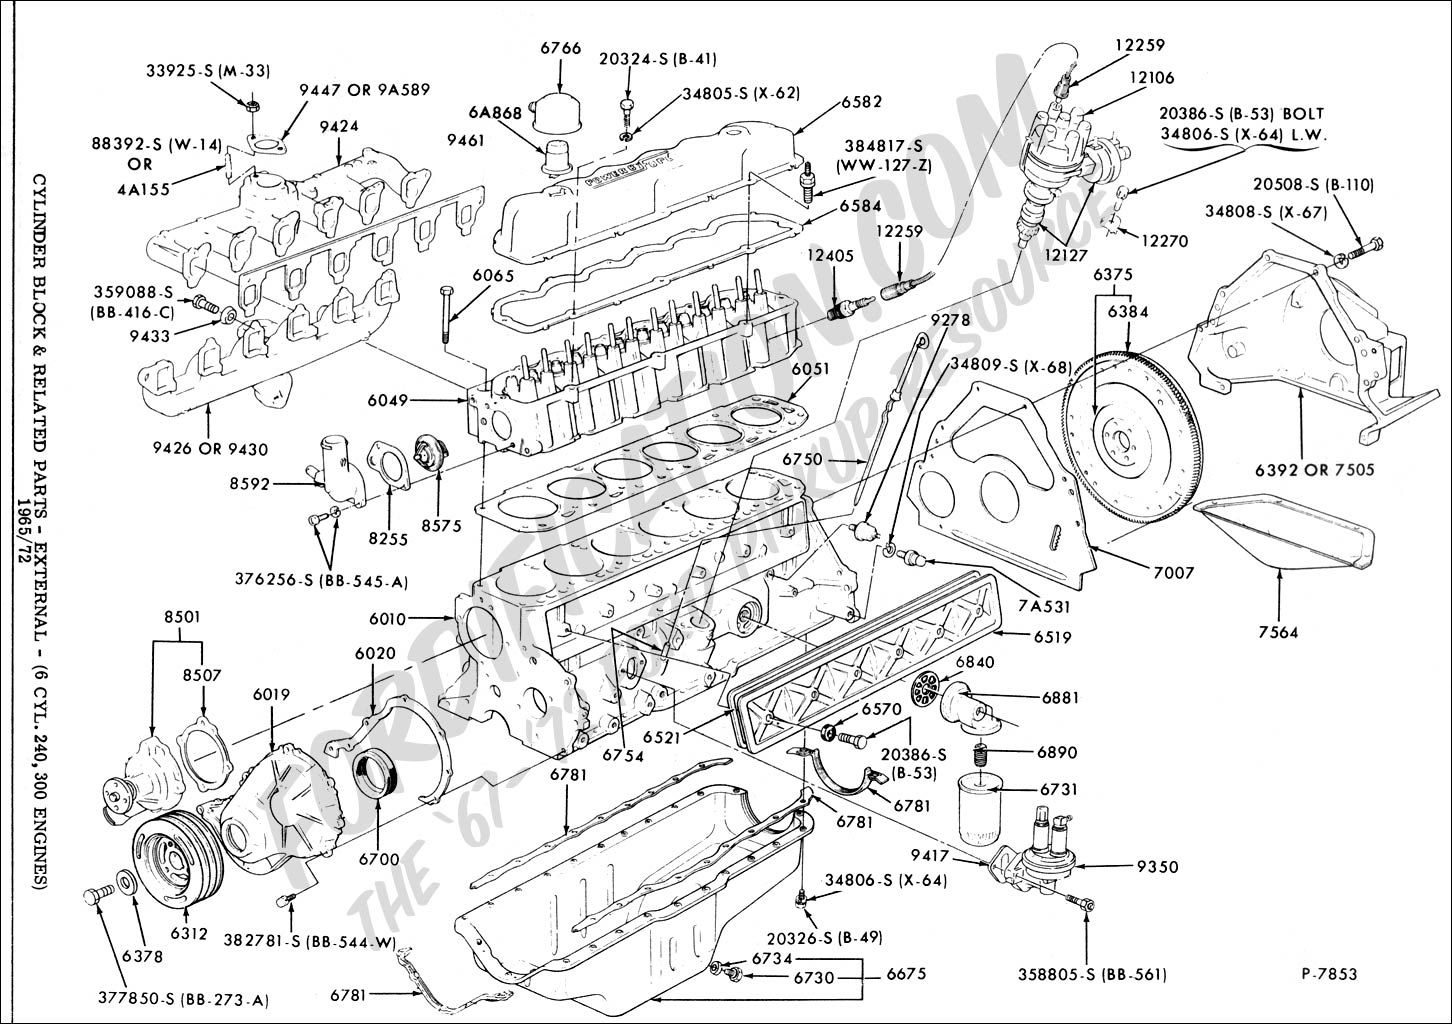 v16 engine diagram wiring diagram data schema v16 engine diagram [ 1452 x 1024 Pixel ]